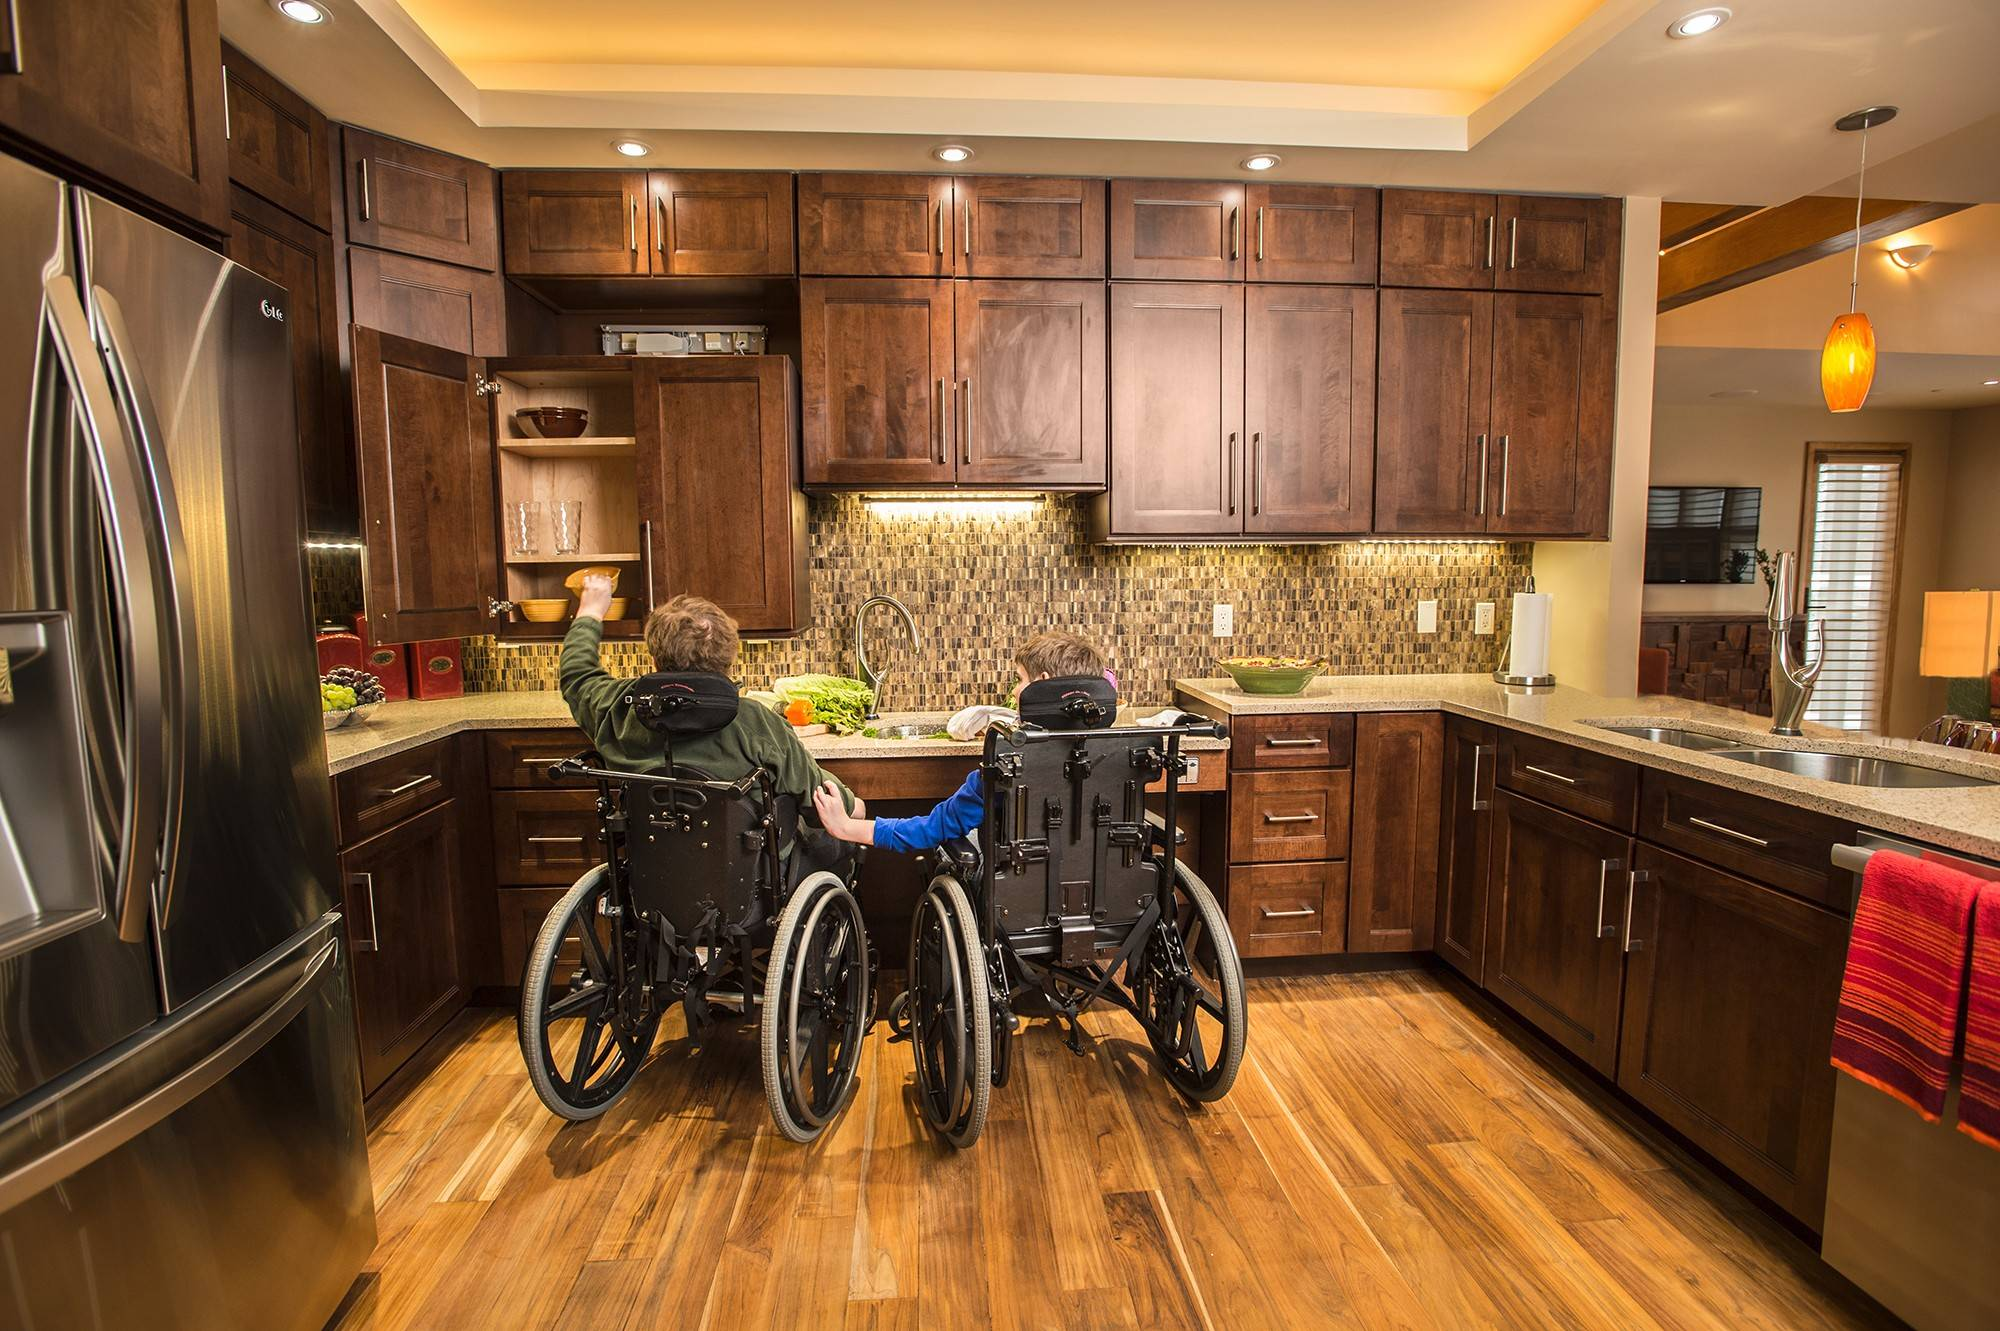 David and Joshua Cibula sit in the kitchen of their new home, which their parents built so the boys can live there with a caregiver after their parents are no longer able to care for them. In the kitchen, cabinetry and countertops can be lowered to provide access.